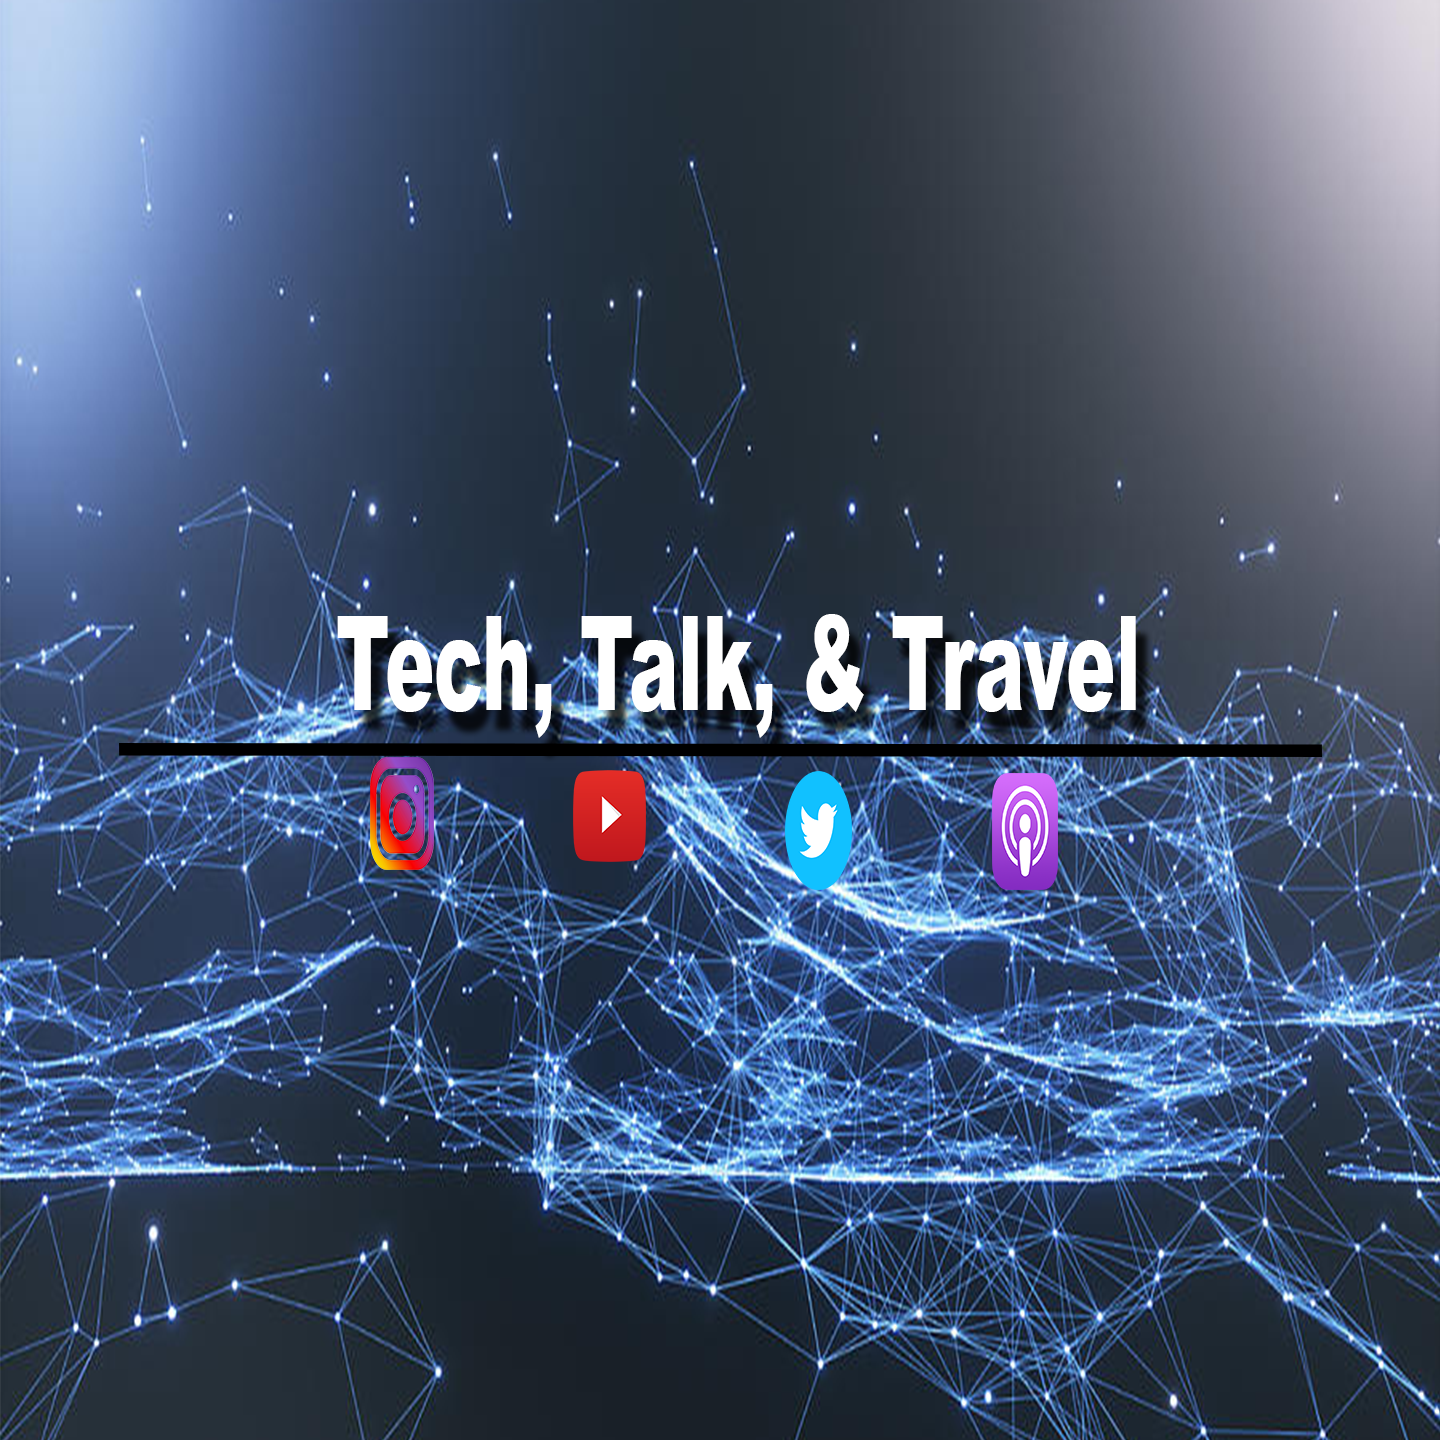 Tech, Talk, & Travel